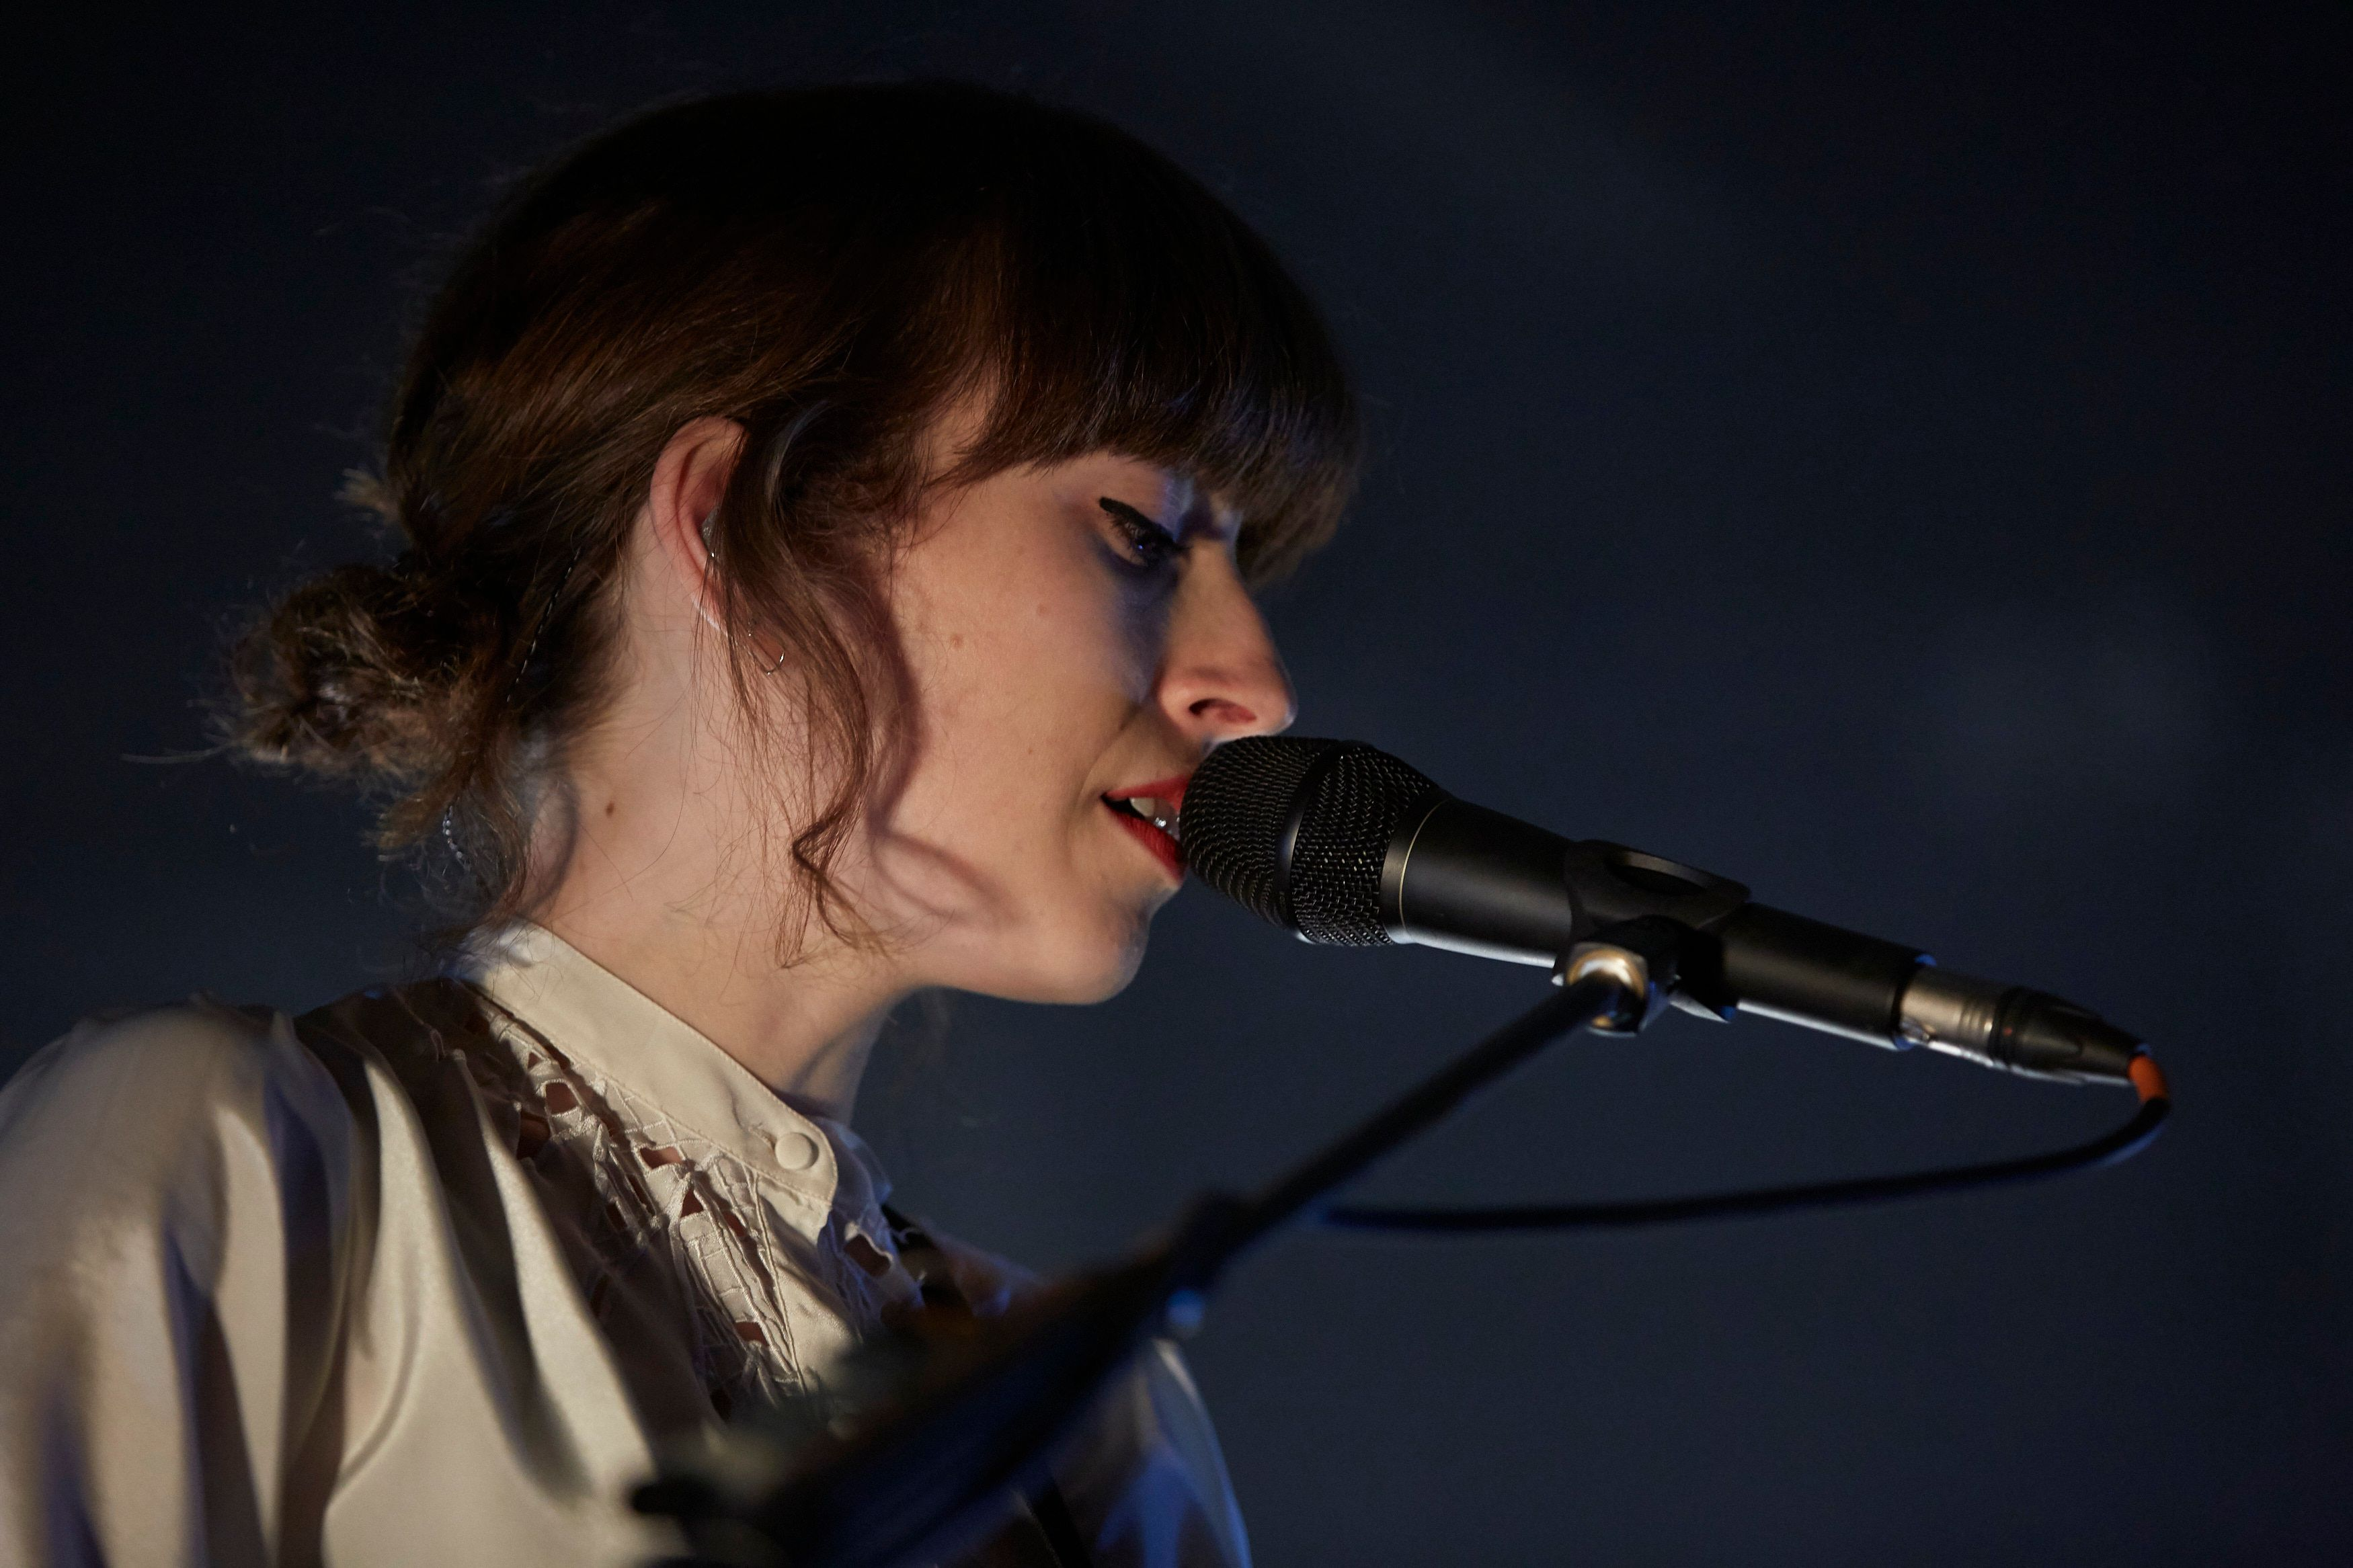 BERLIN, GERMANY - OCTOBER 14: Elena Tonra of Daughter performs at Columbiahalle on October 14, 2016 in Berlin, Germany. (Photo by Sebastian Reuter/Redferns)